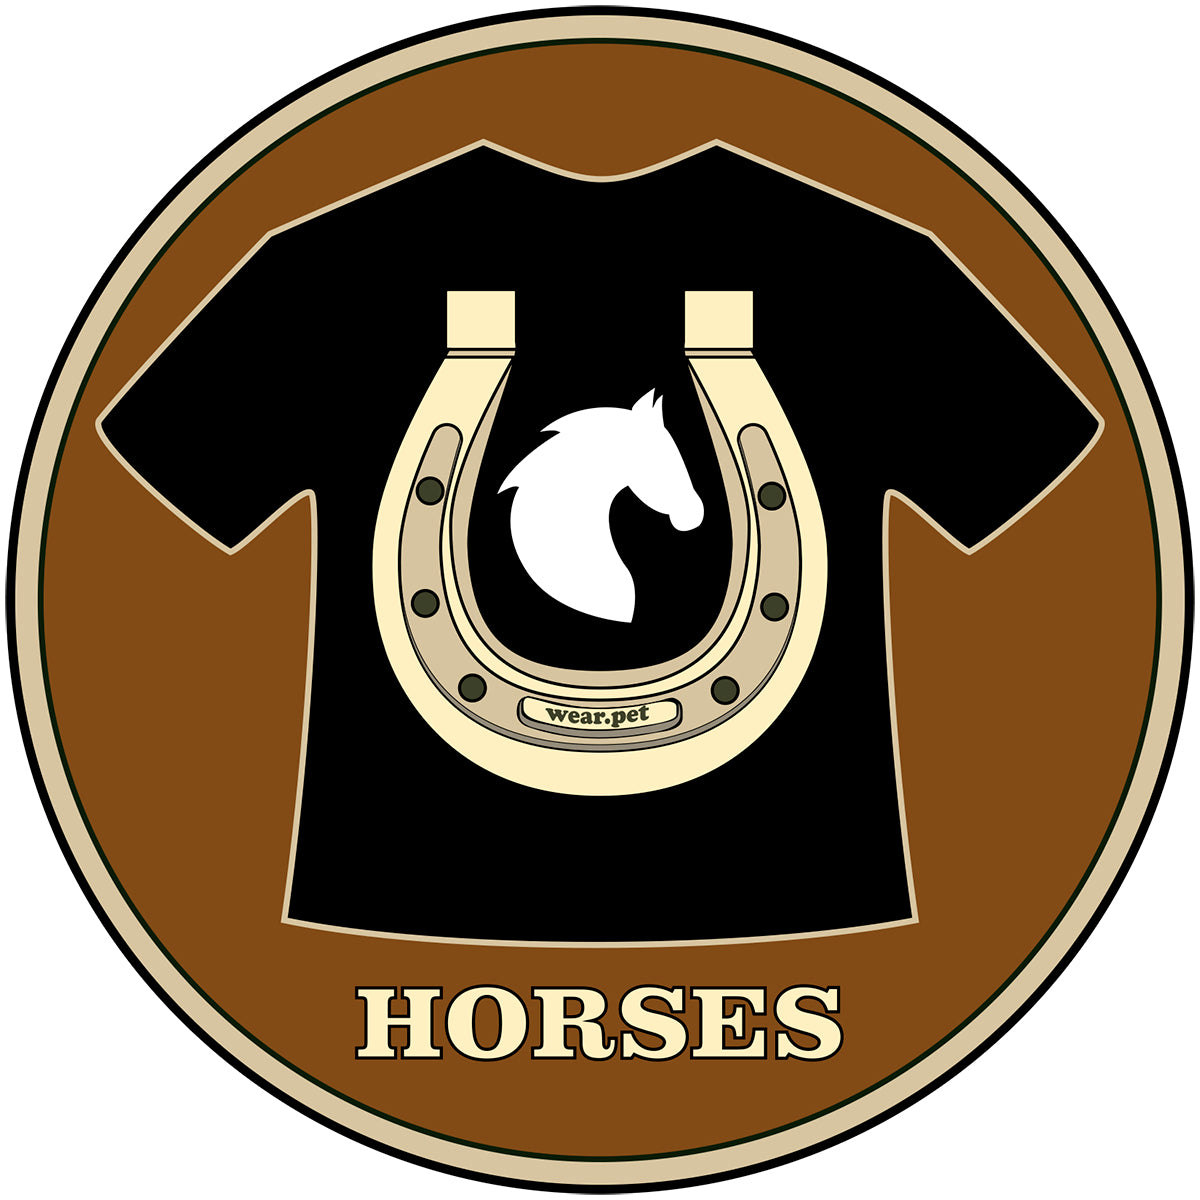 Logo Instagram of Wear Pet Horses - Wear Pet Online Pet Store for Animal Lovers